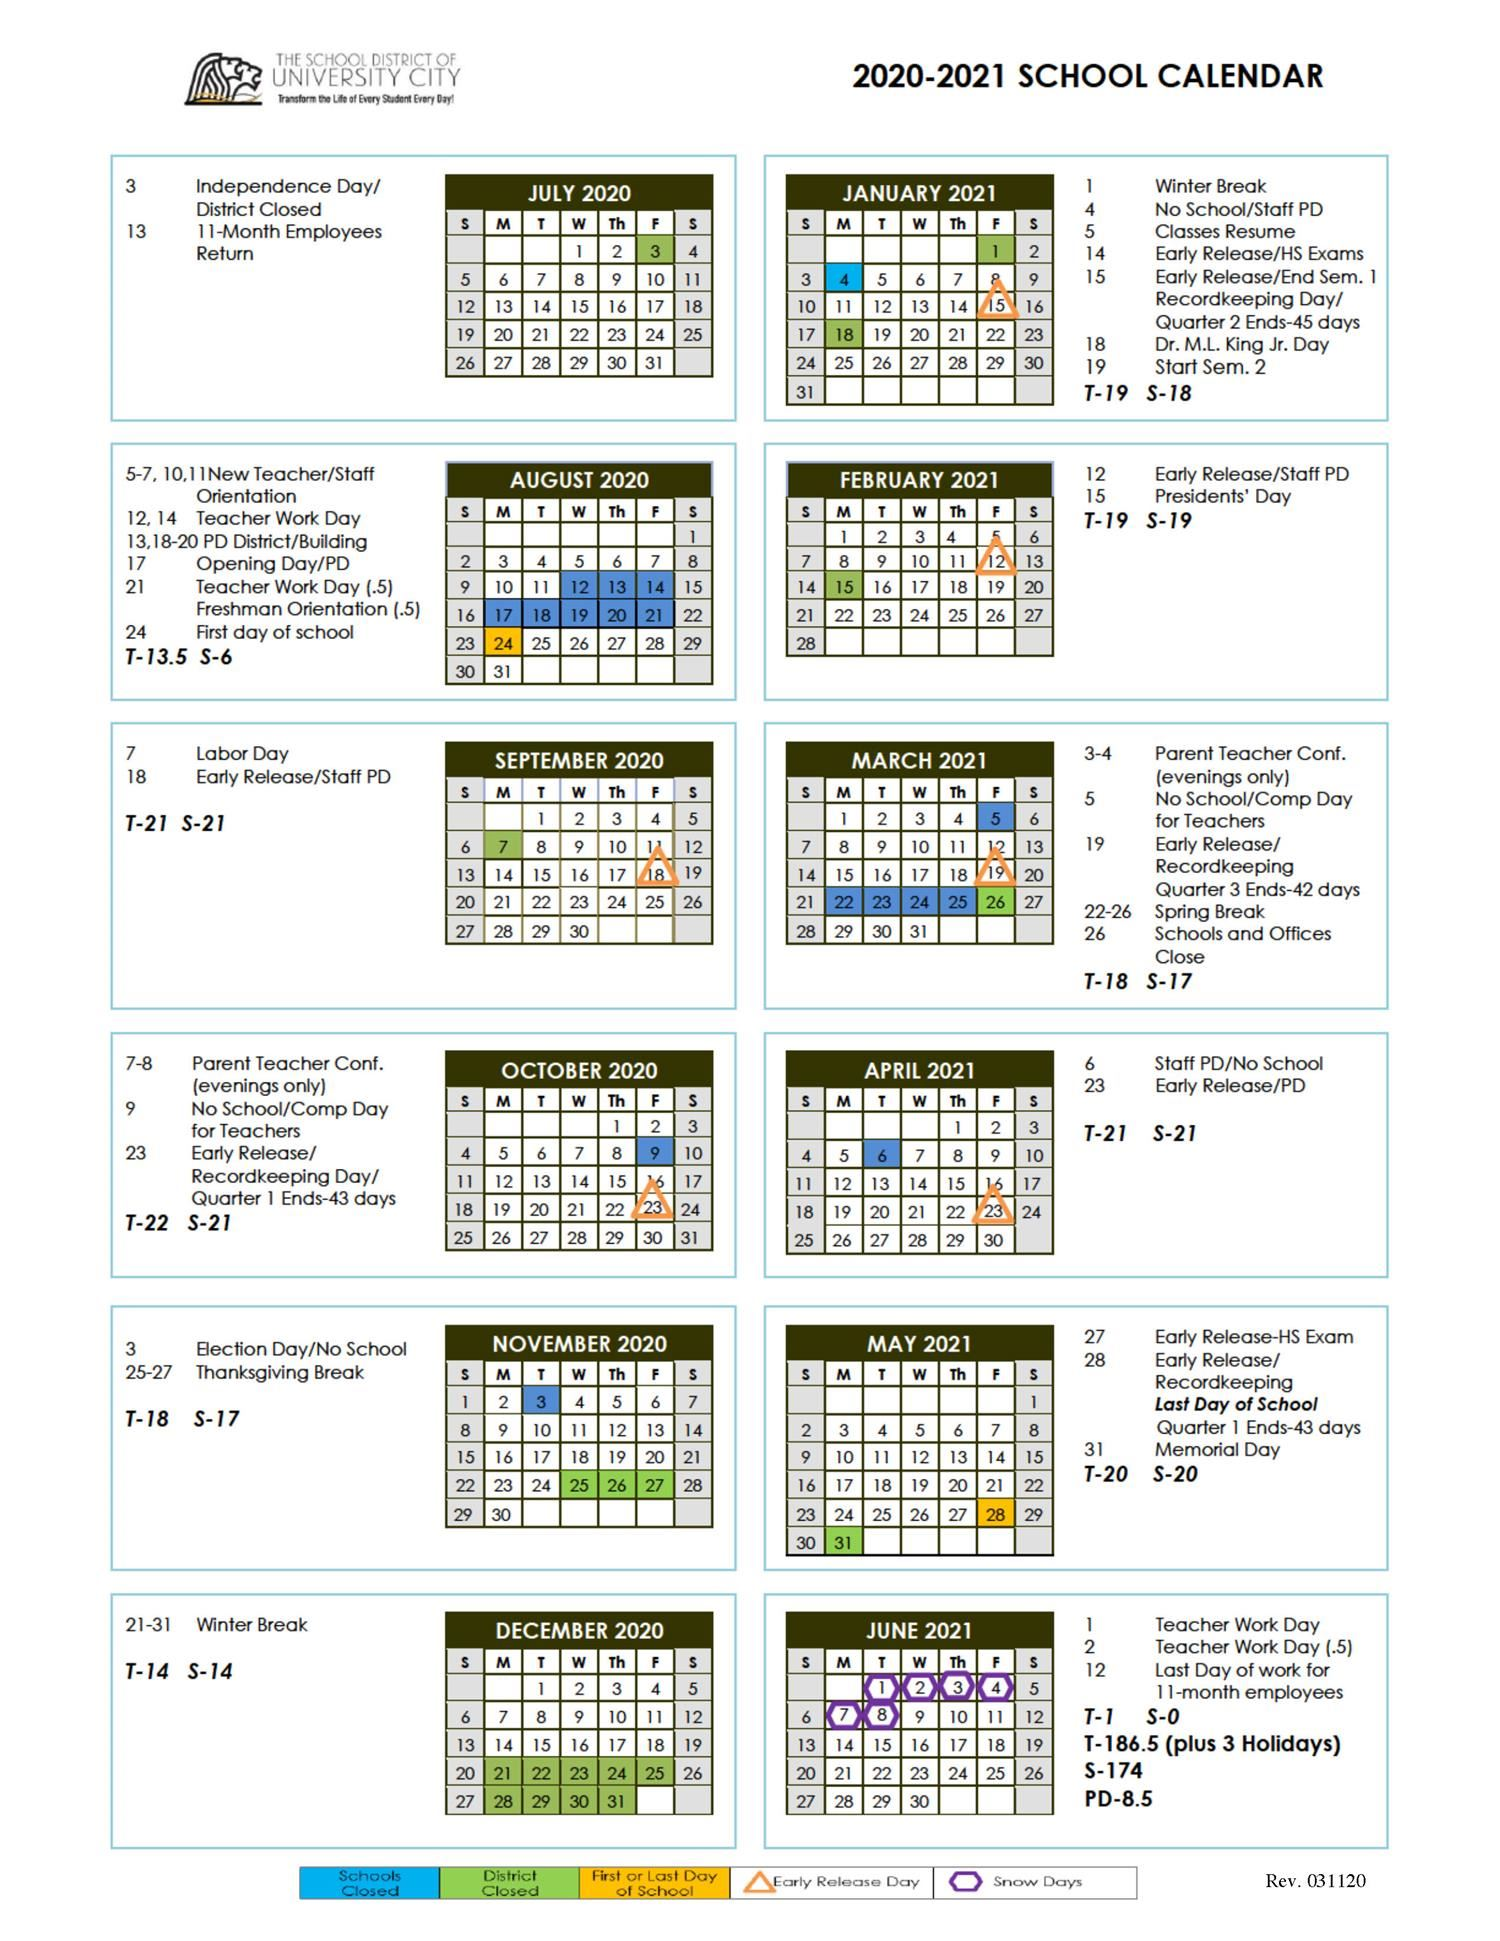 2020-21 School Calendar updated 031120